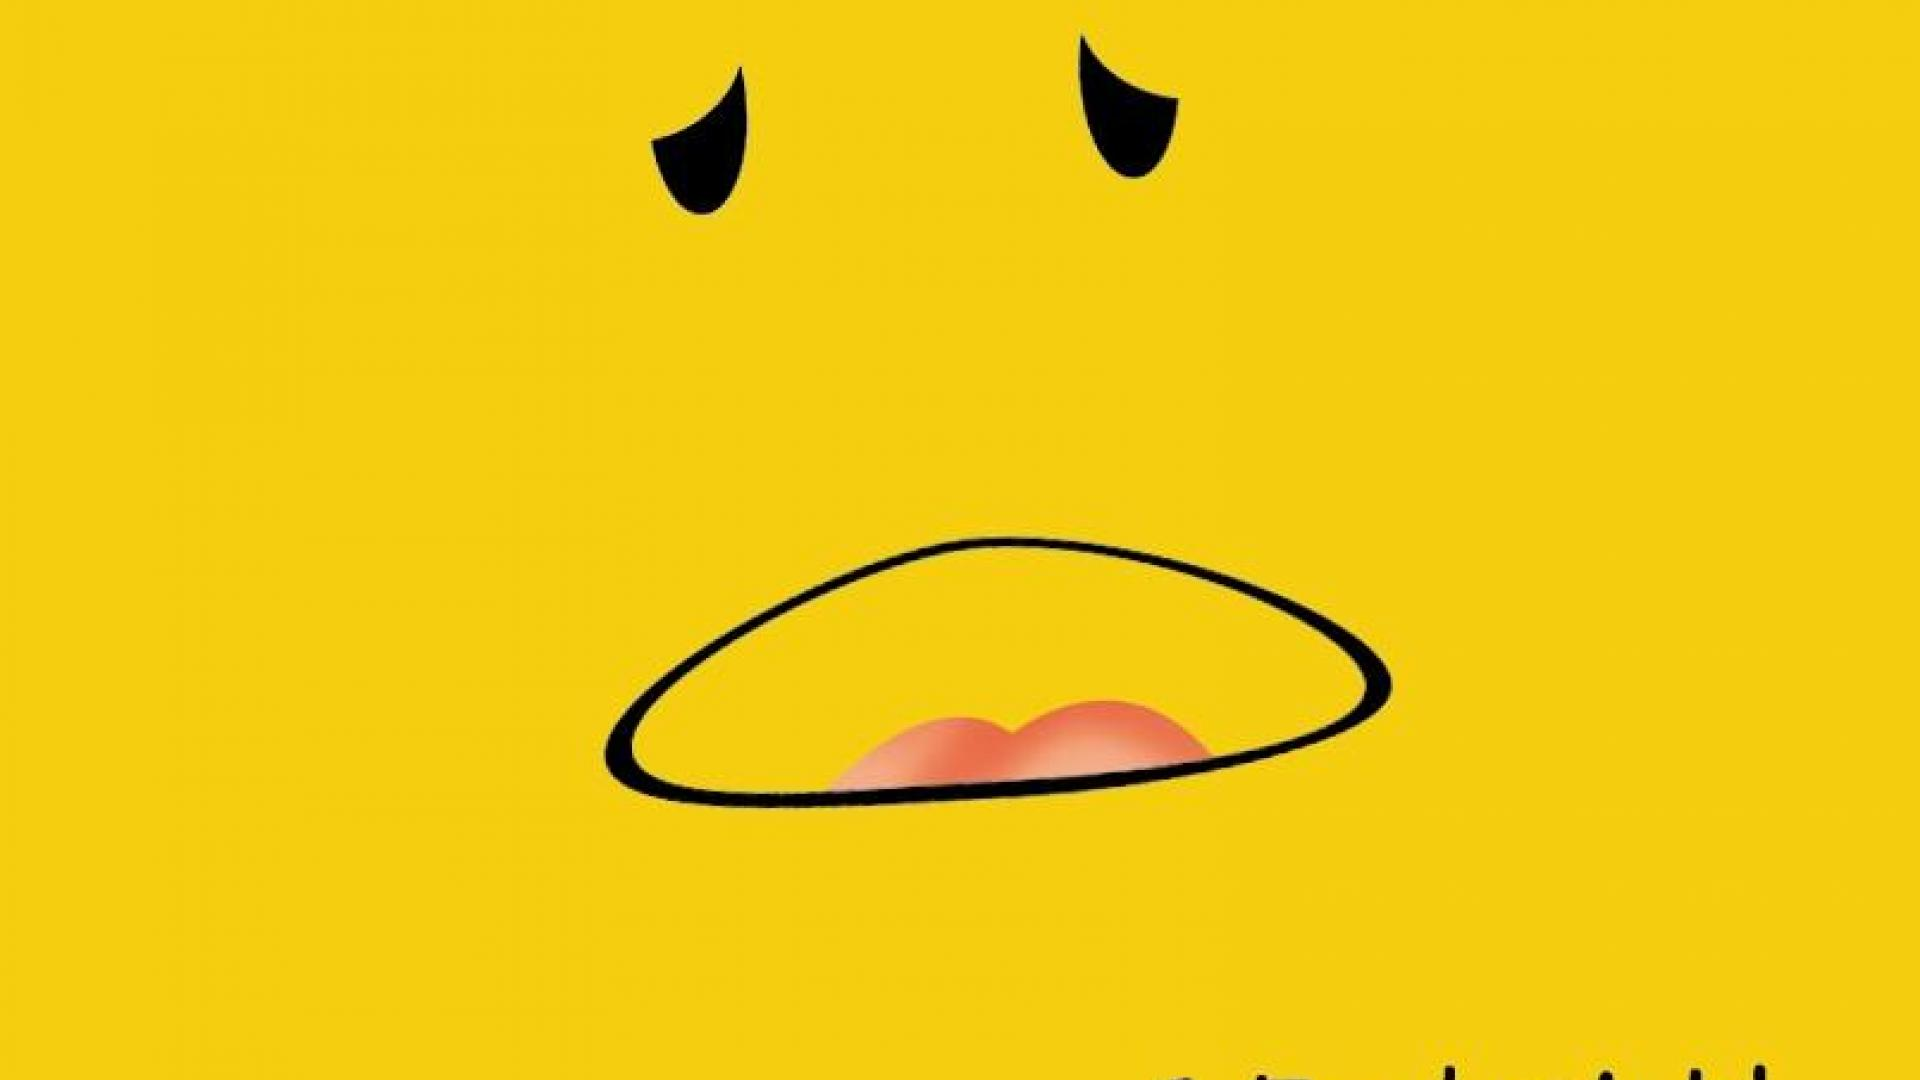 yellow background with cartoon face a Feel-sick-wallpapers-HD